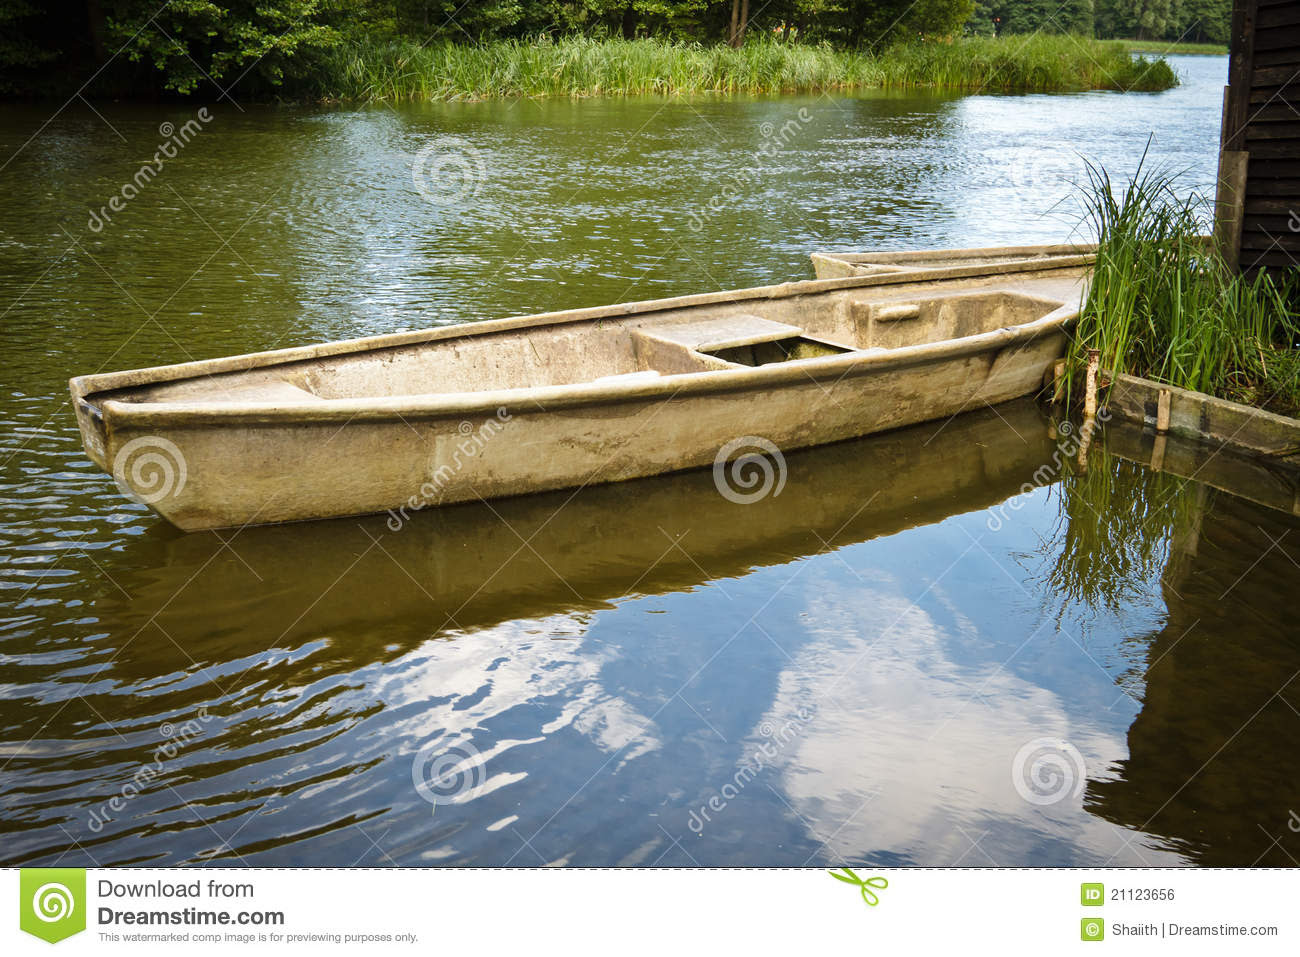 Vintage Fishing Boat In The Lake Royalty Free Stock Image - Image